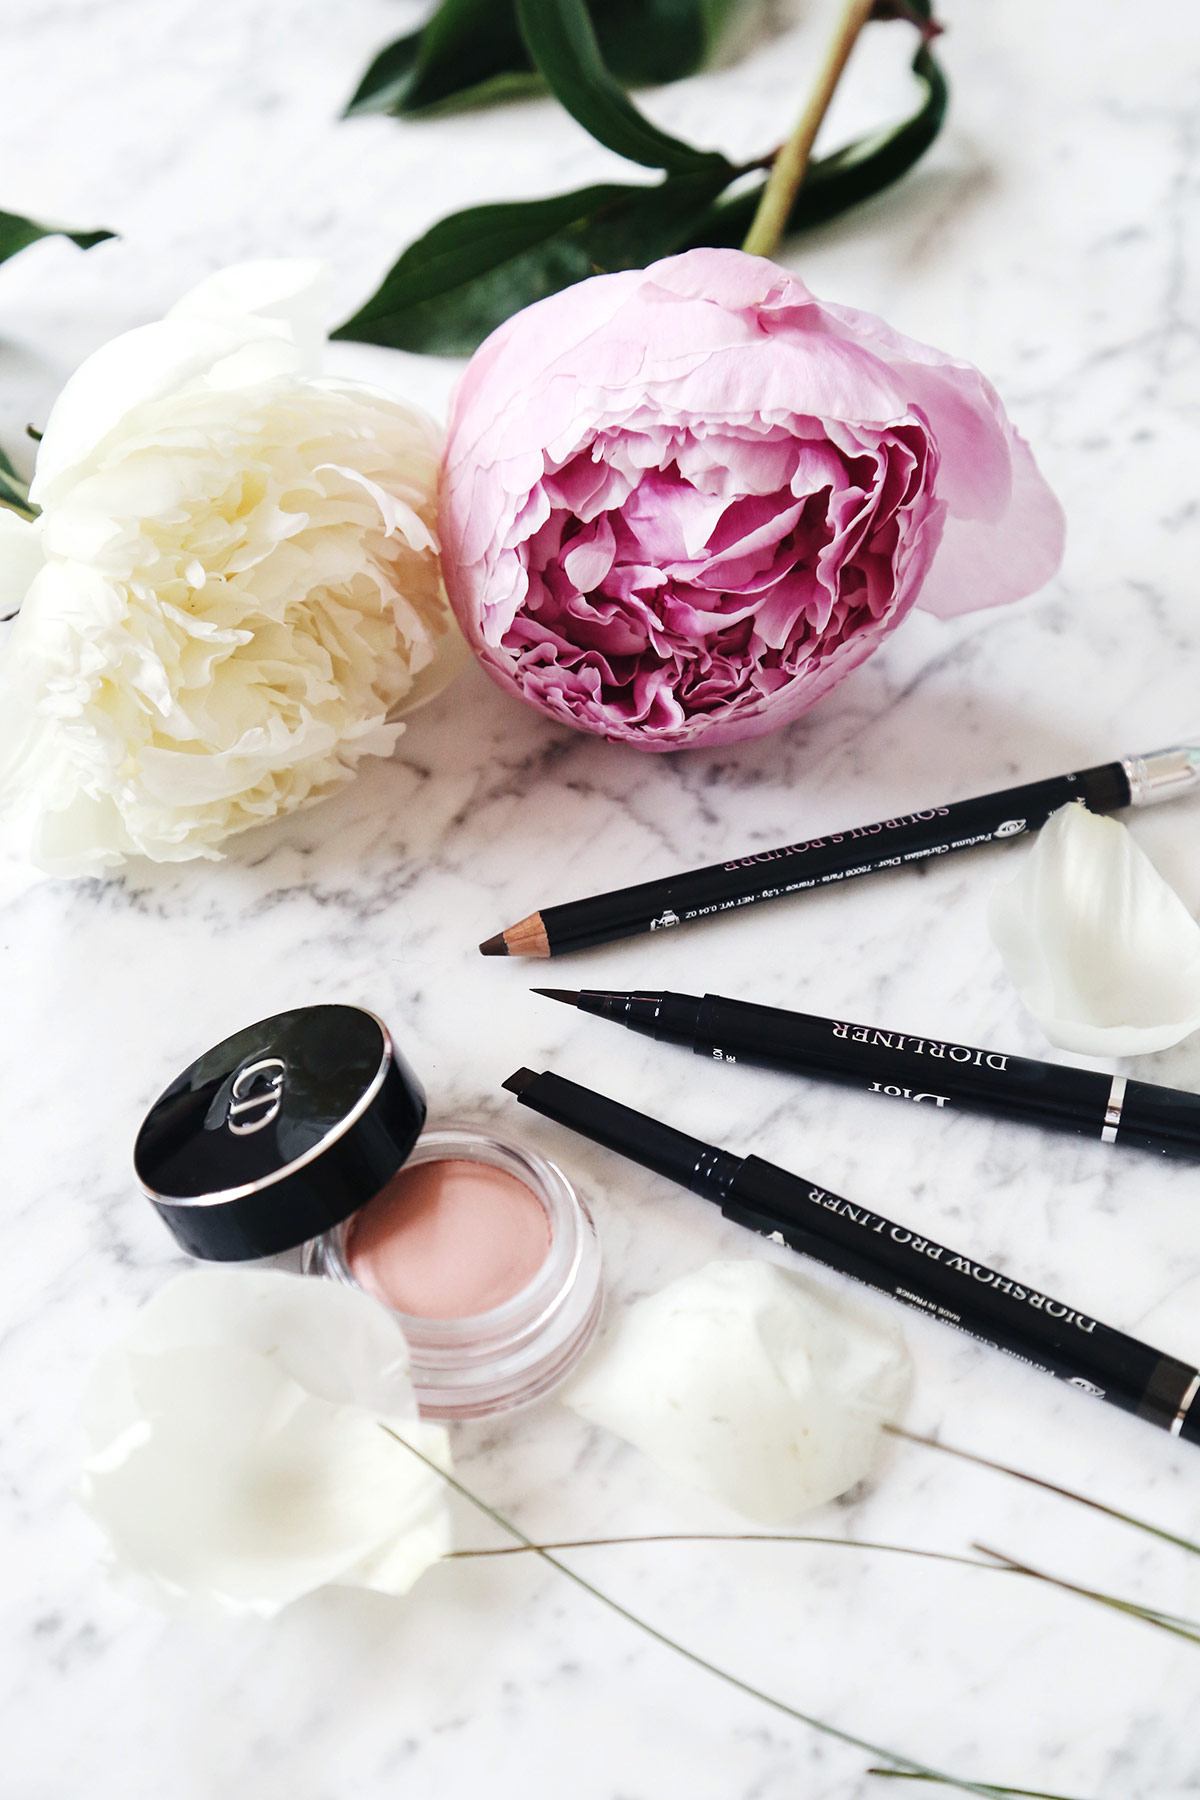 Dior makeup products eye liners